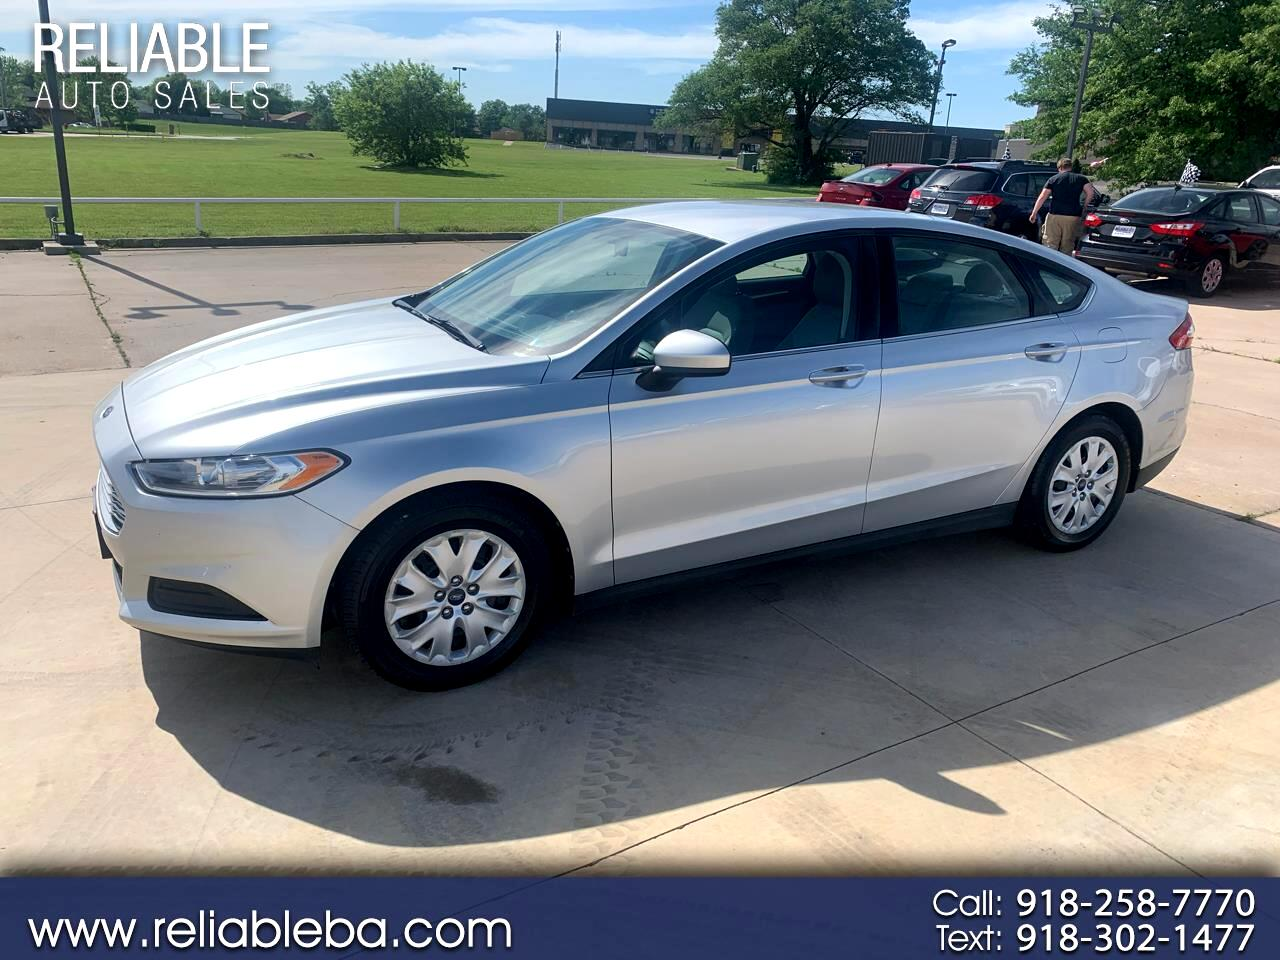 Ford Fusion 4dr Sdn S FWD 2013